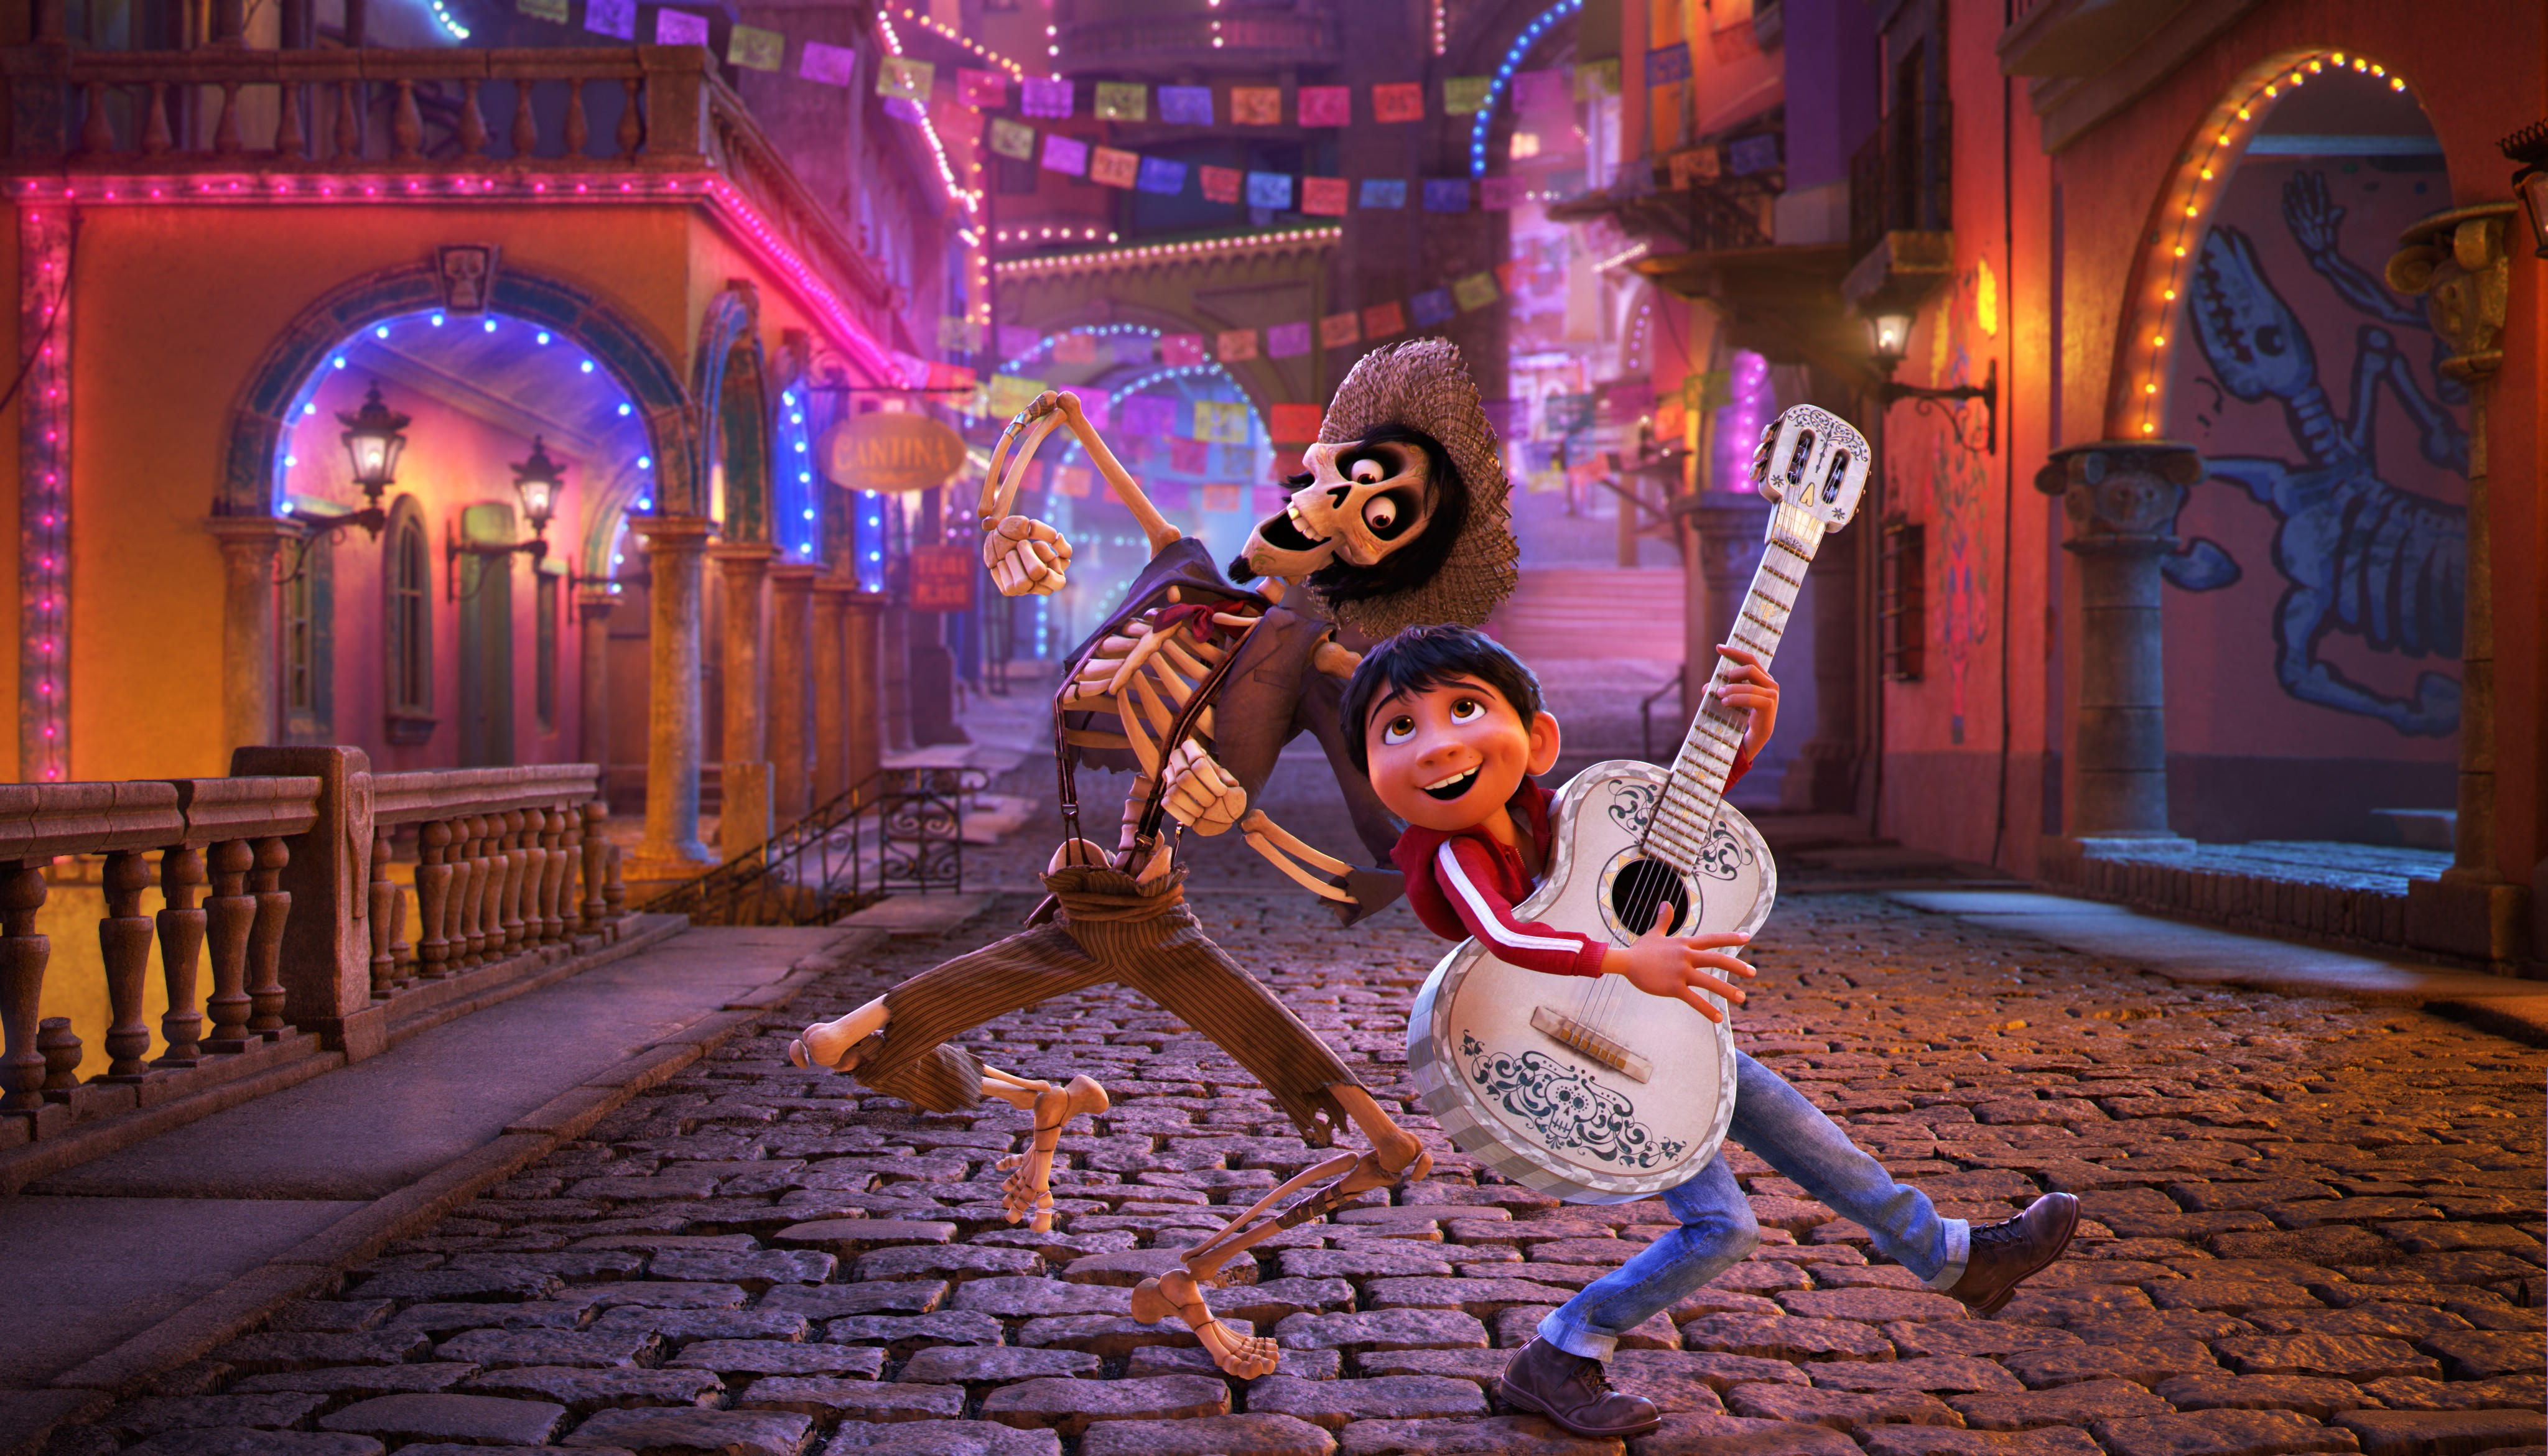 Iphone Os X Wallpaper Wallpaper Coco 4k Movies 14918